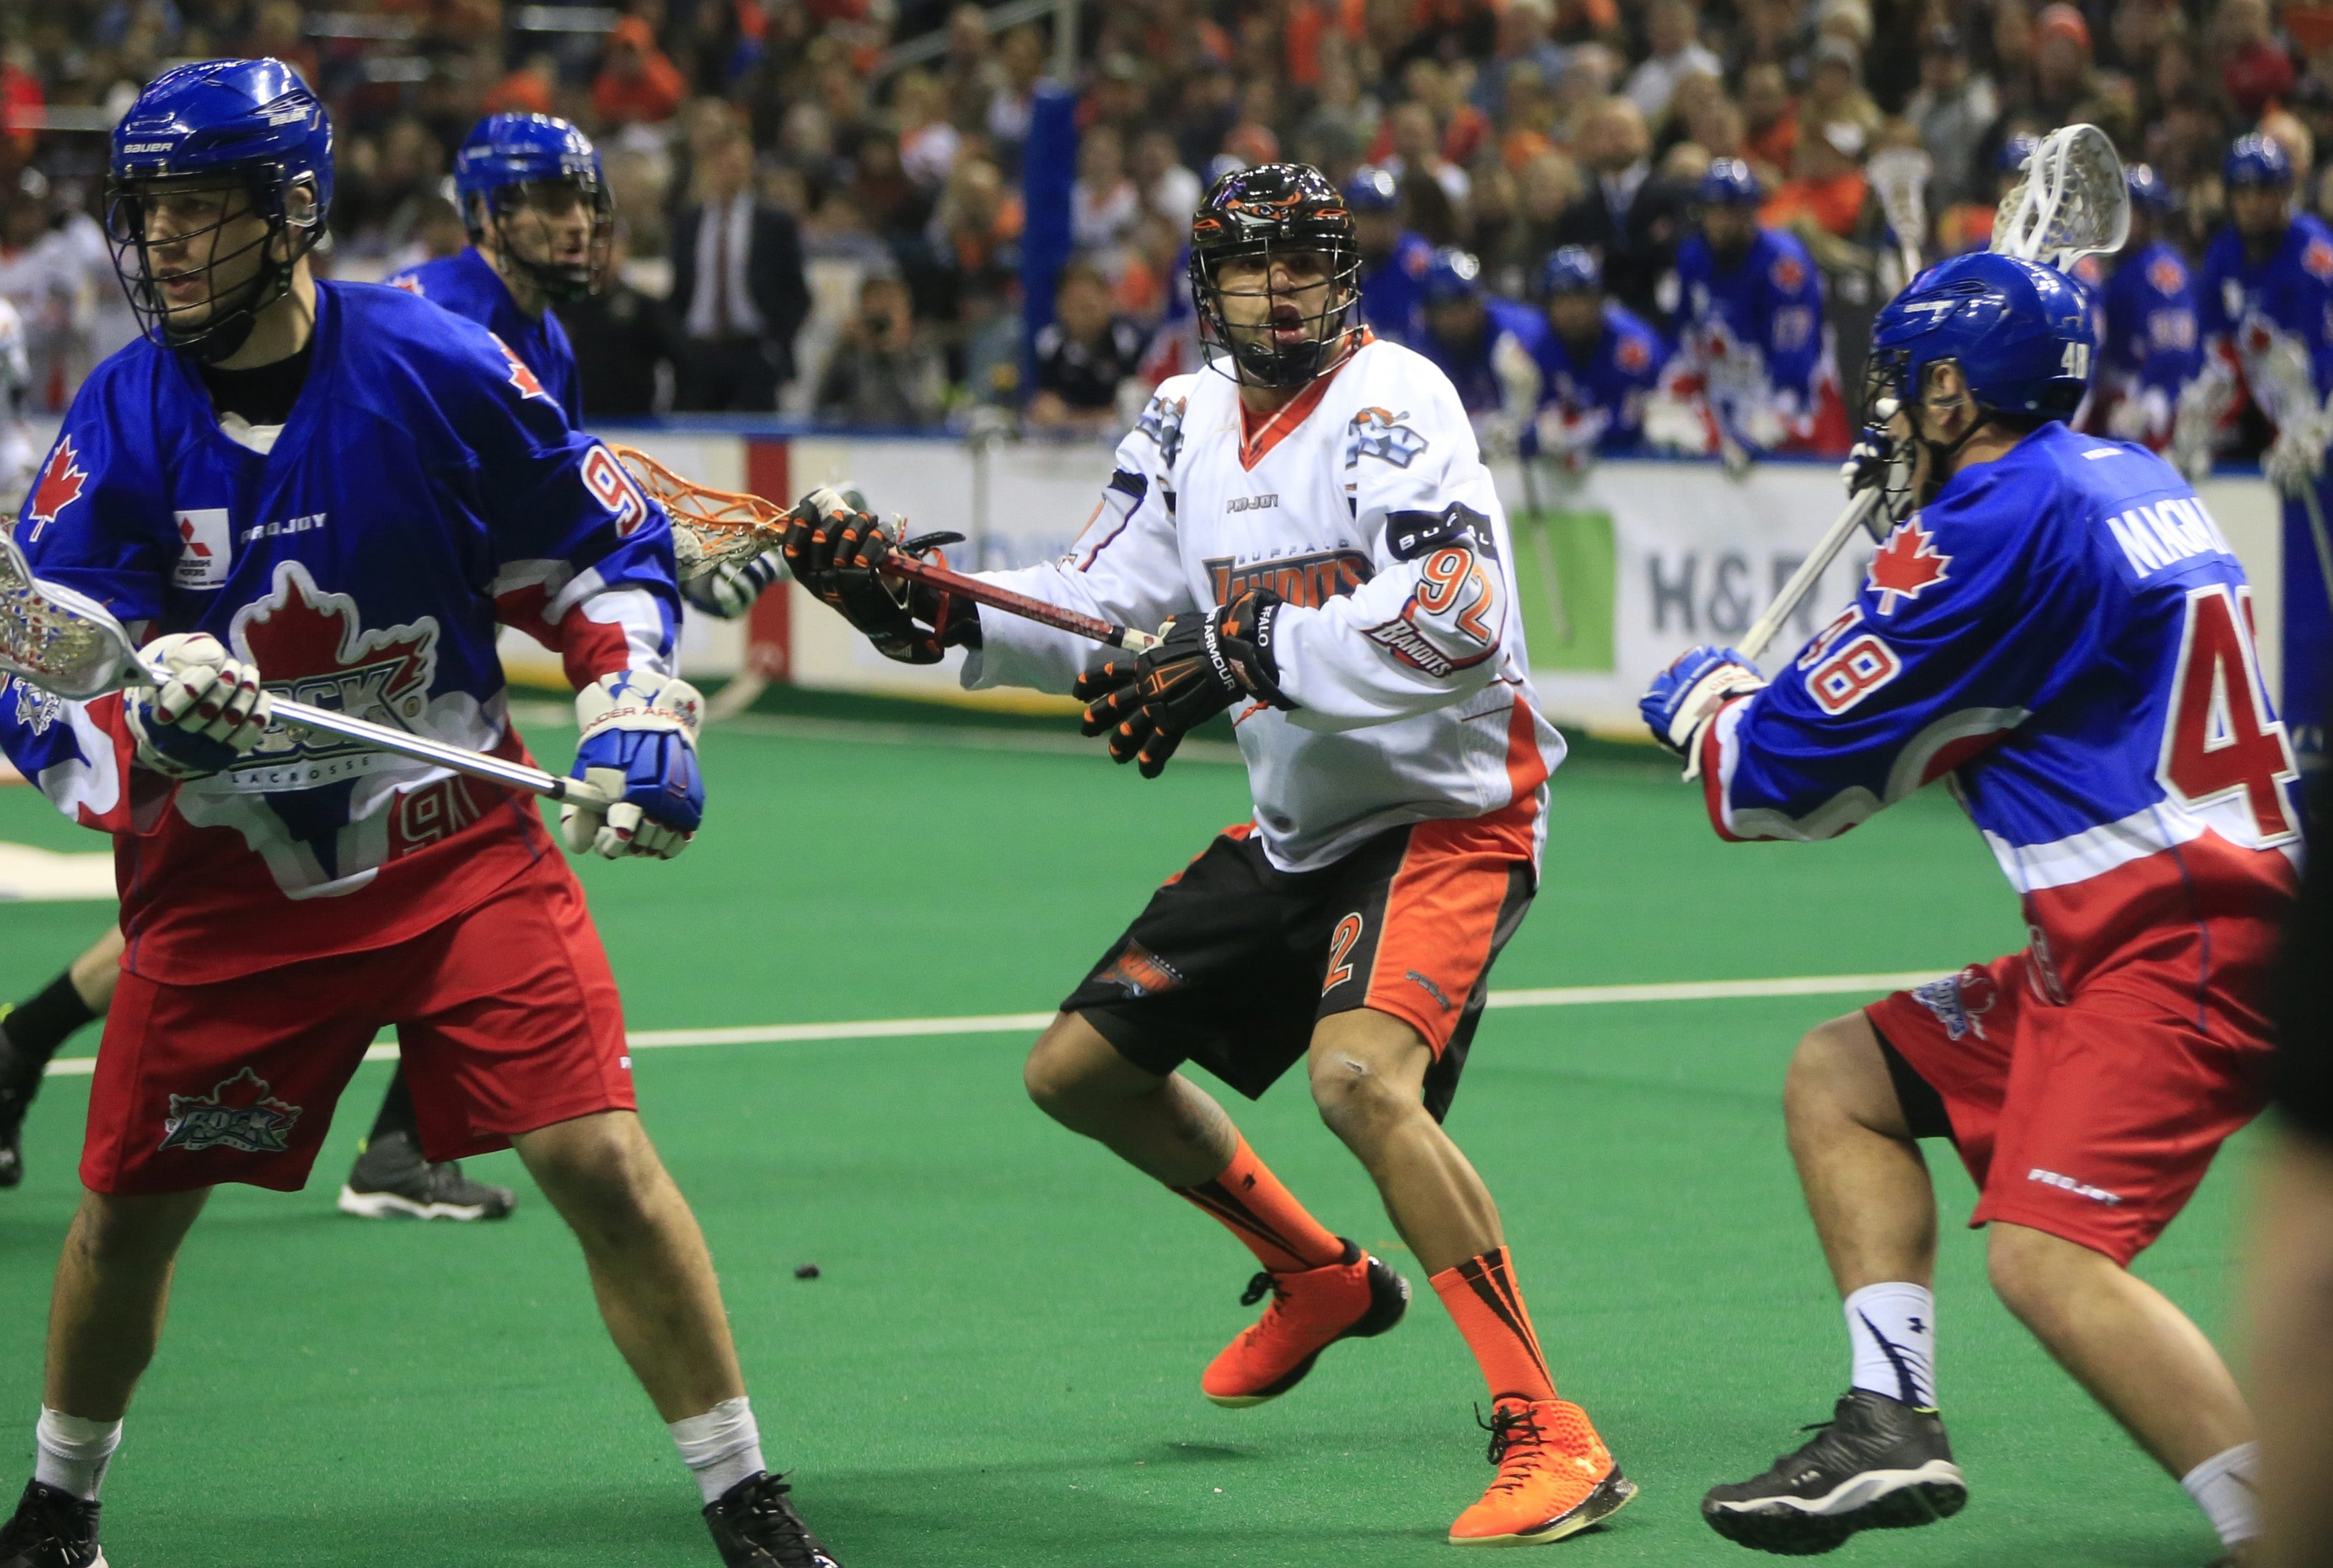 Dhane Smith looks to pass during the Bandits' 12-6 victory over Toronto.